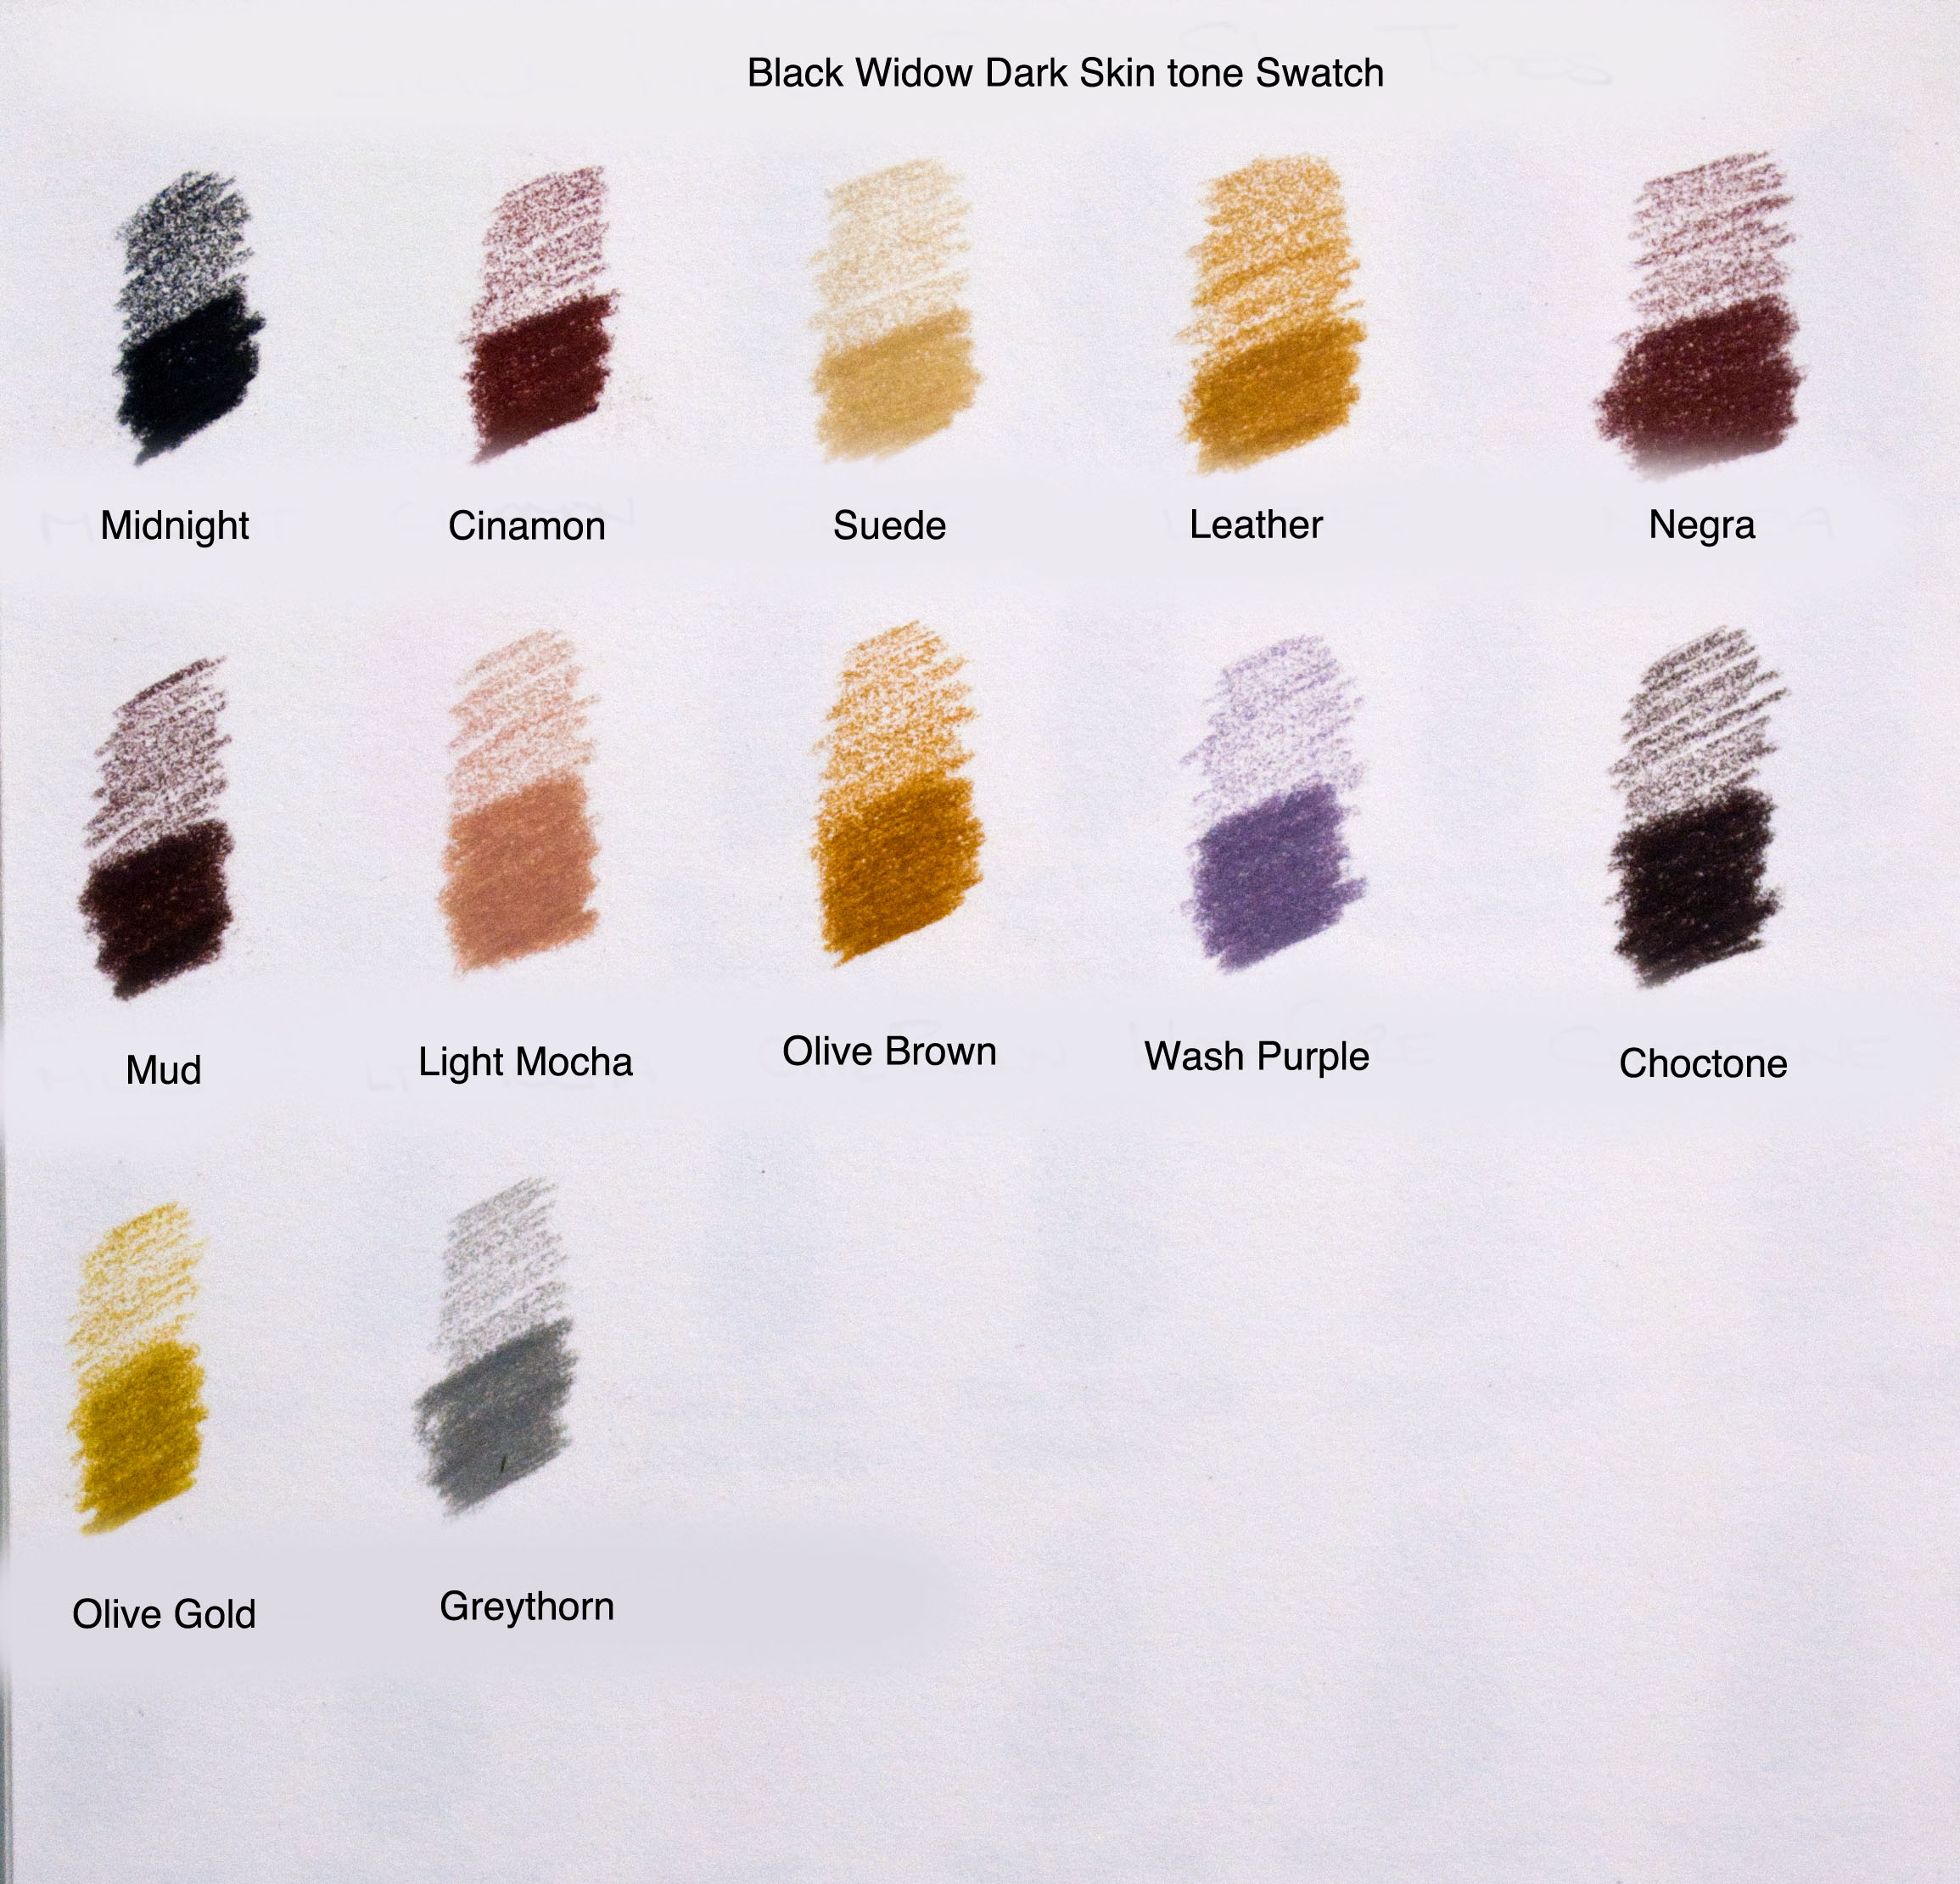 Dark Black Widow Skin Tone Swatch.jpg